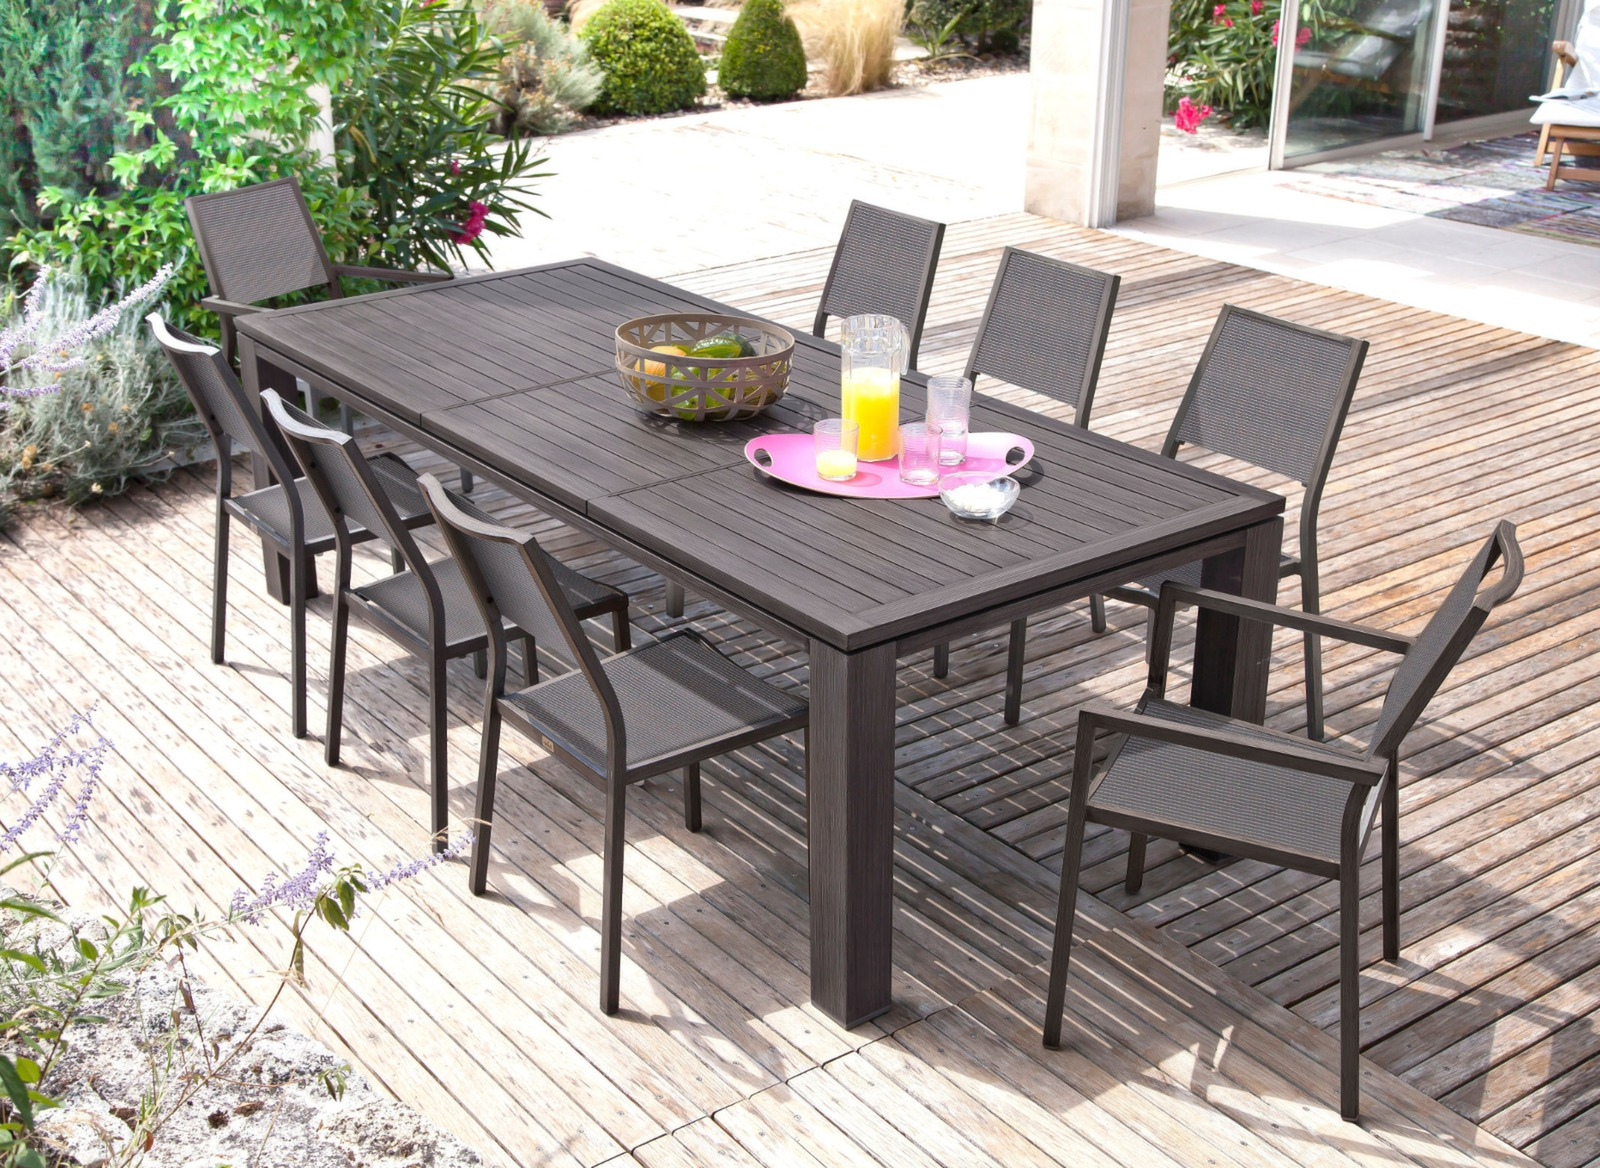 Grande table de jardin rectangle Fiero - Mobilier jardin - Proloisirs